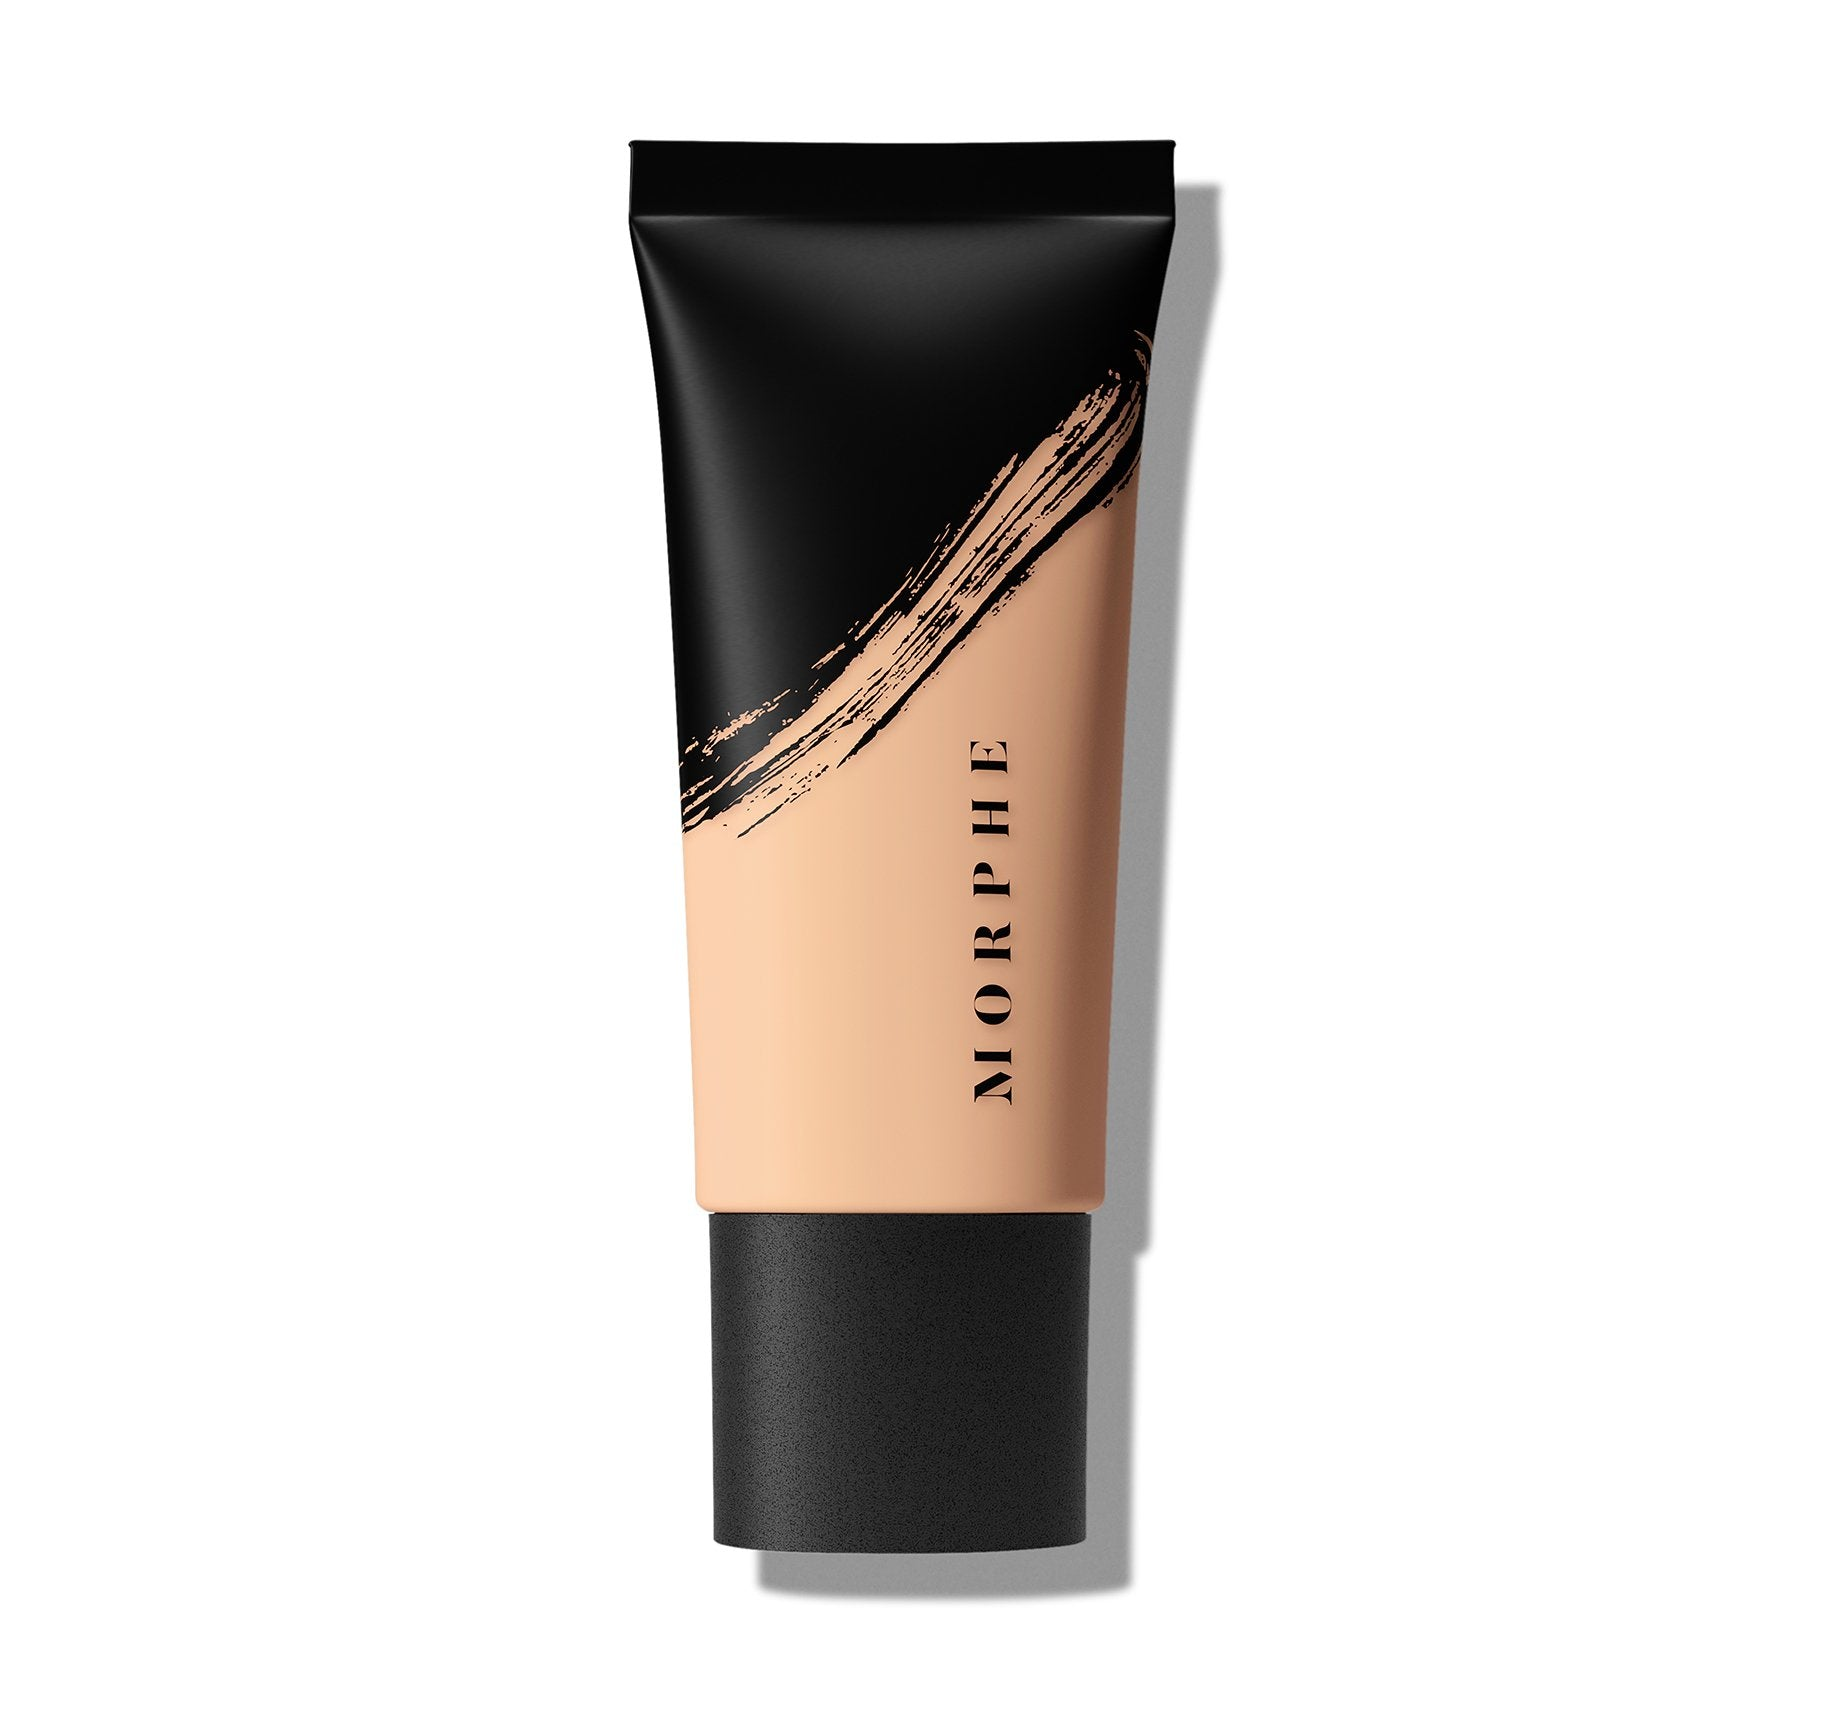 FLUIDITY FULL-COVERAGE FOUNDATION - F1.100, view larger image